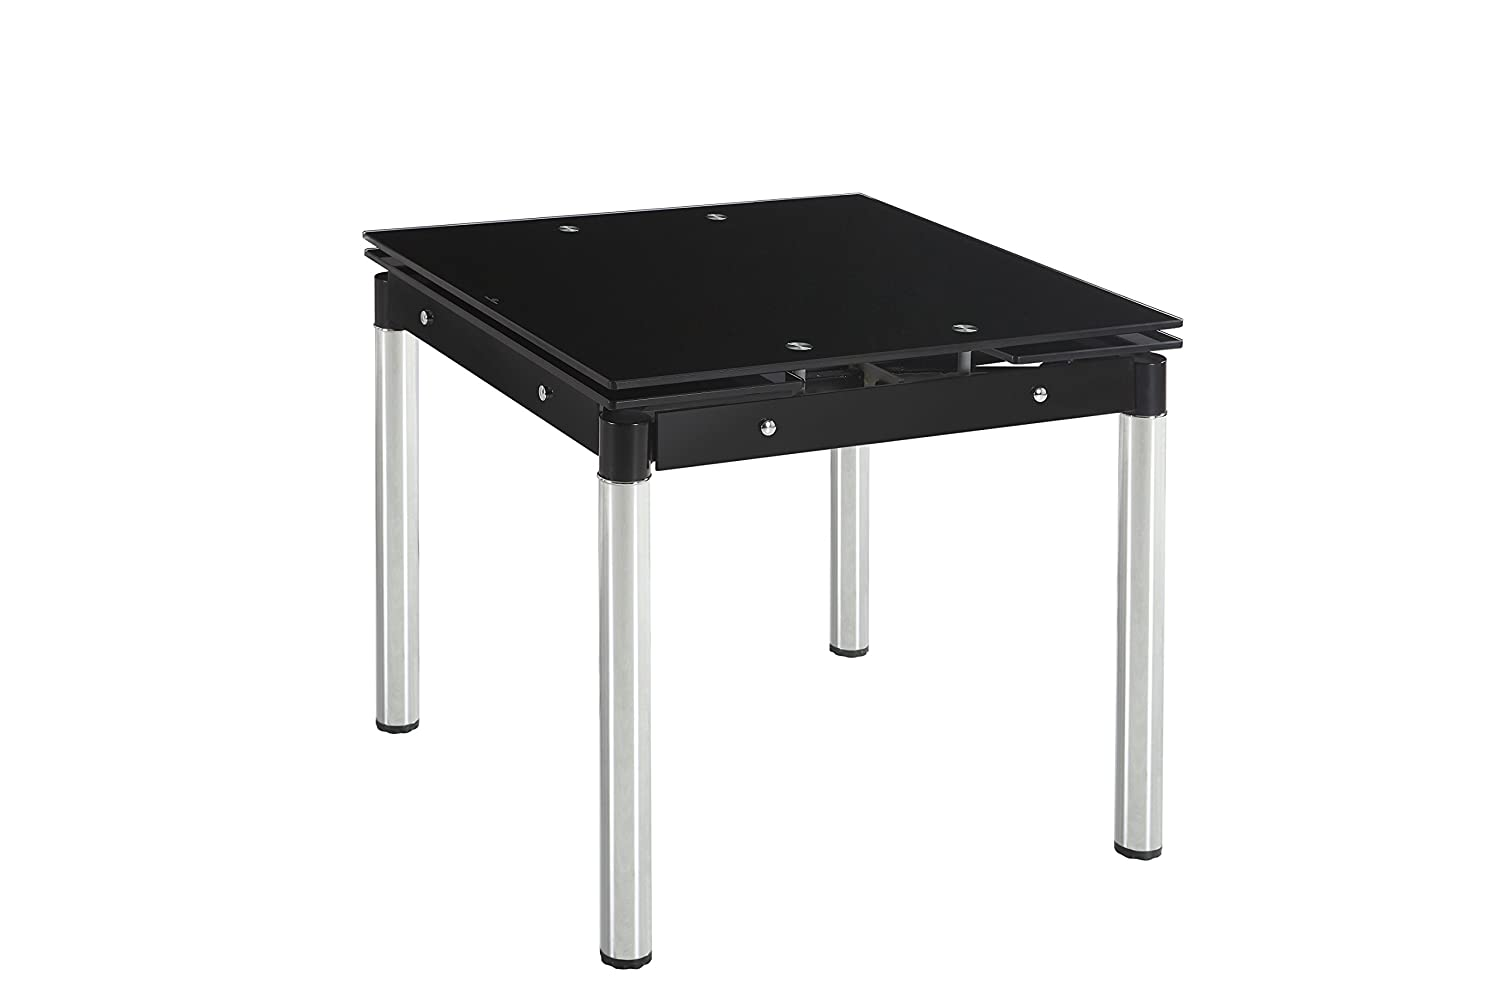 Extending Coffee Table Black Extending Dining Table With Chrome Legs Table Only Square